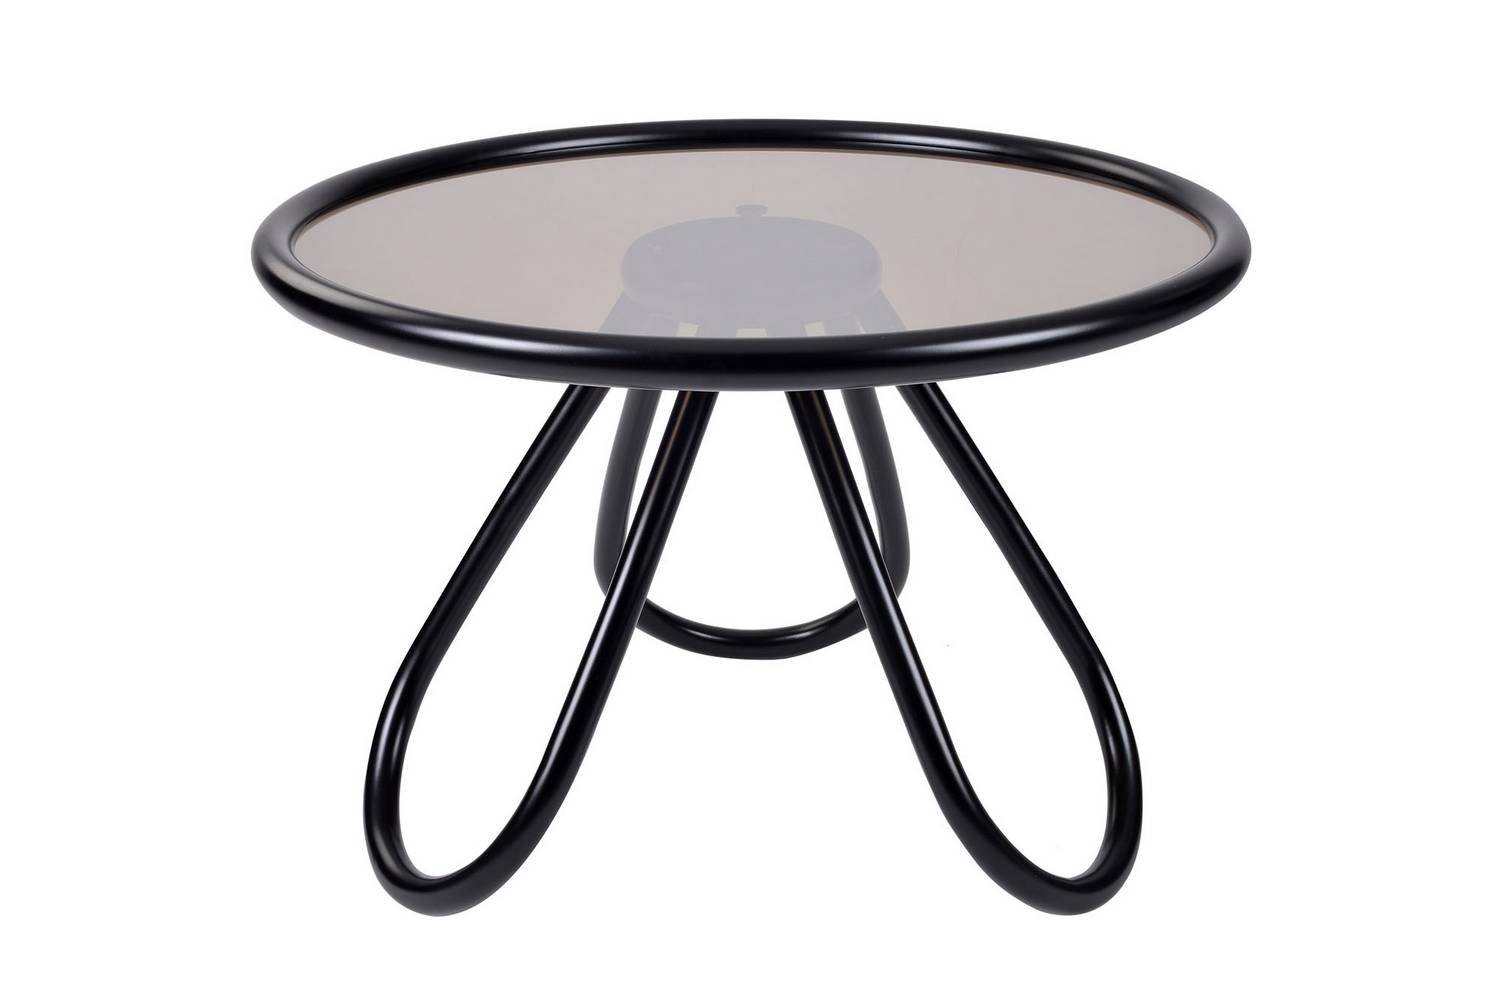 Arch Coffee Table by Front for Wiener GTV Design